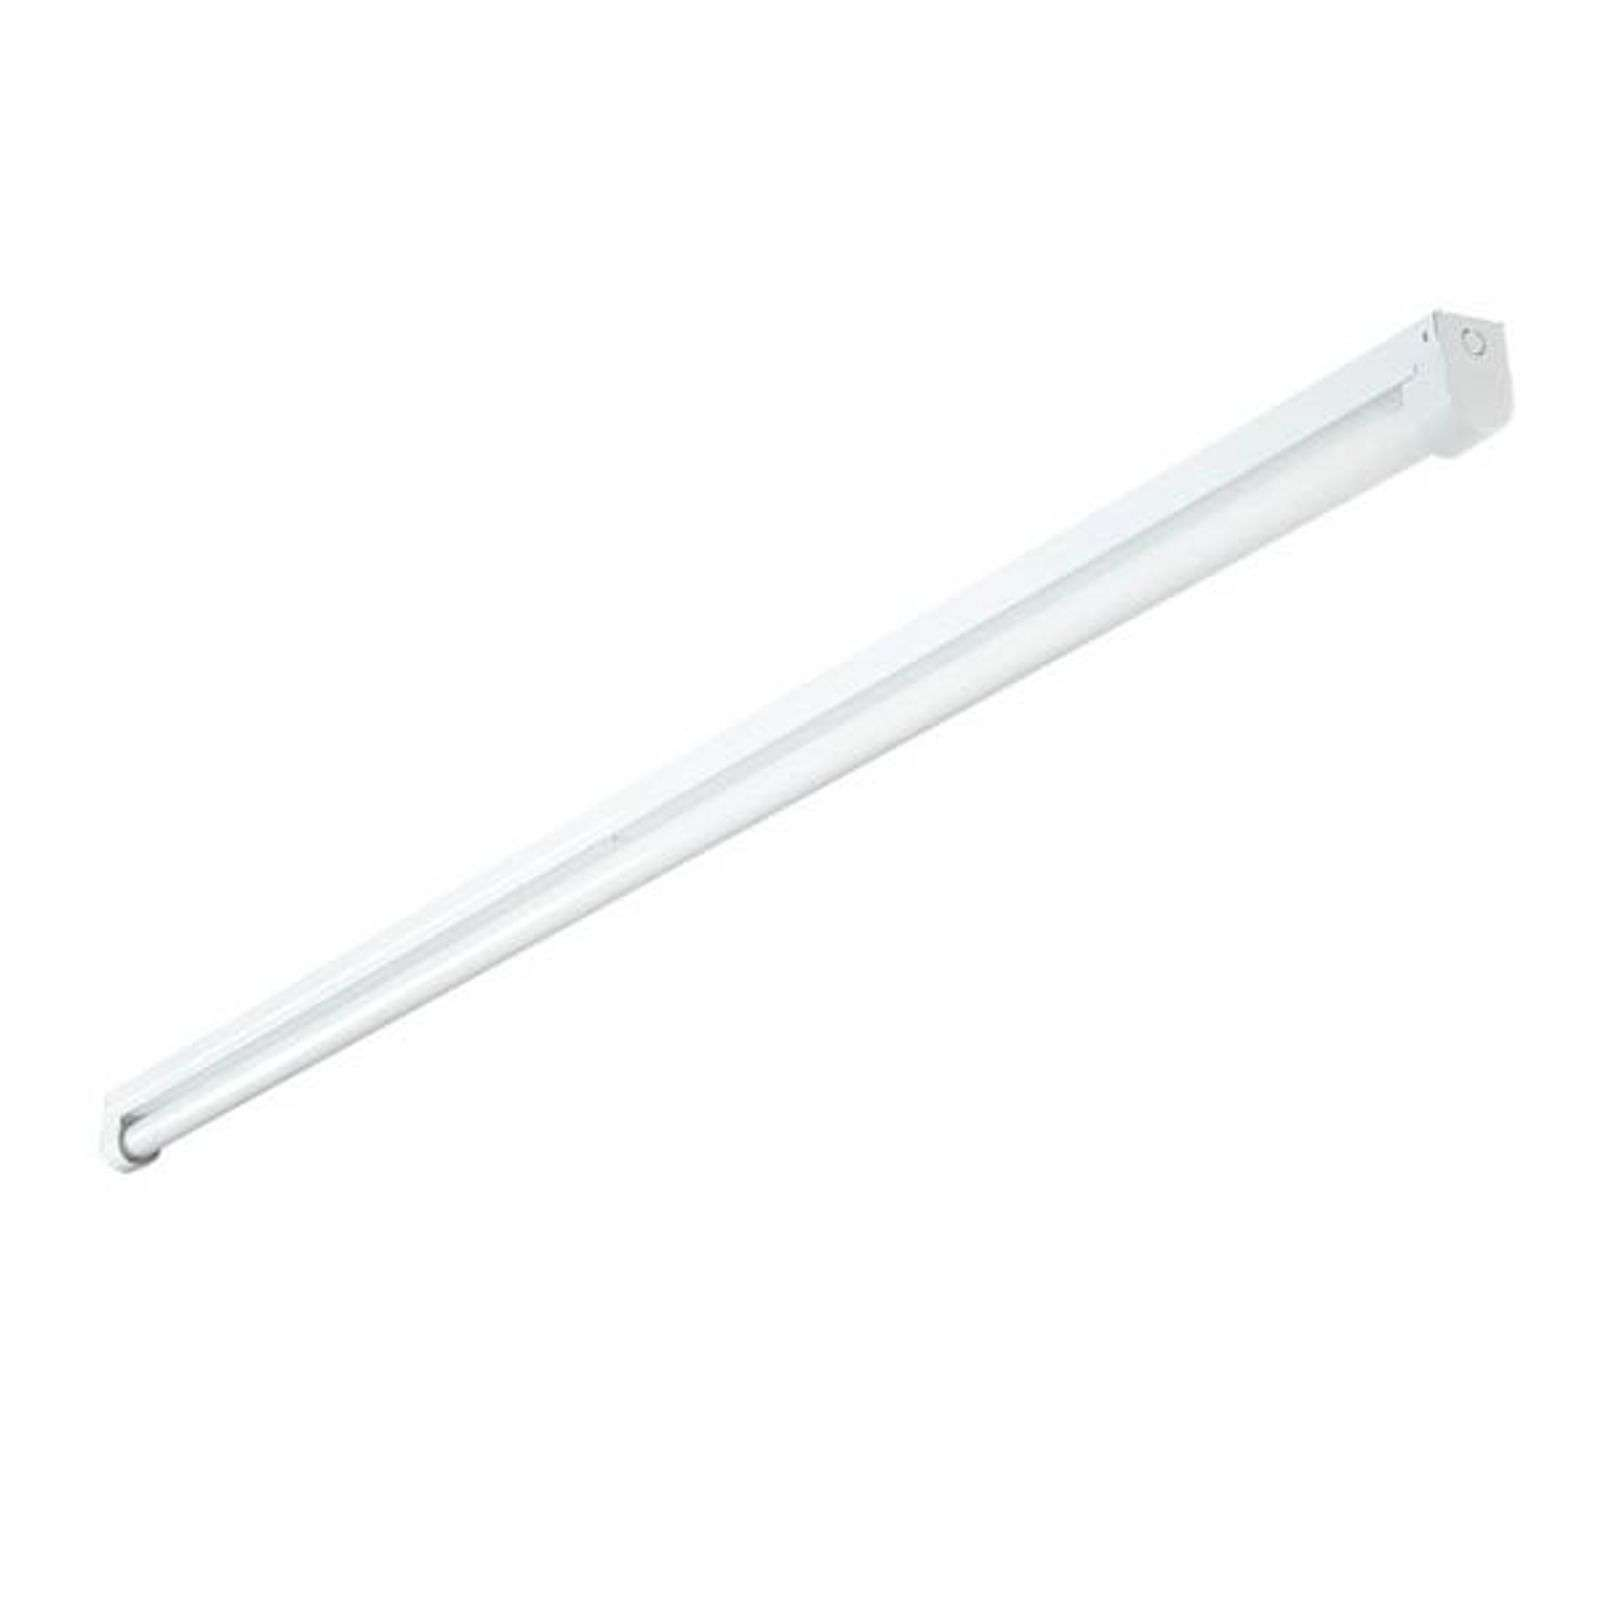 Light strip for under-cabinet light, length 155 cm